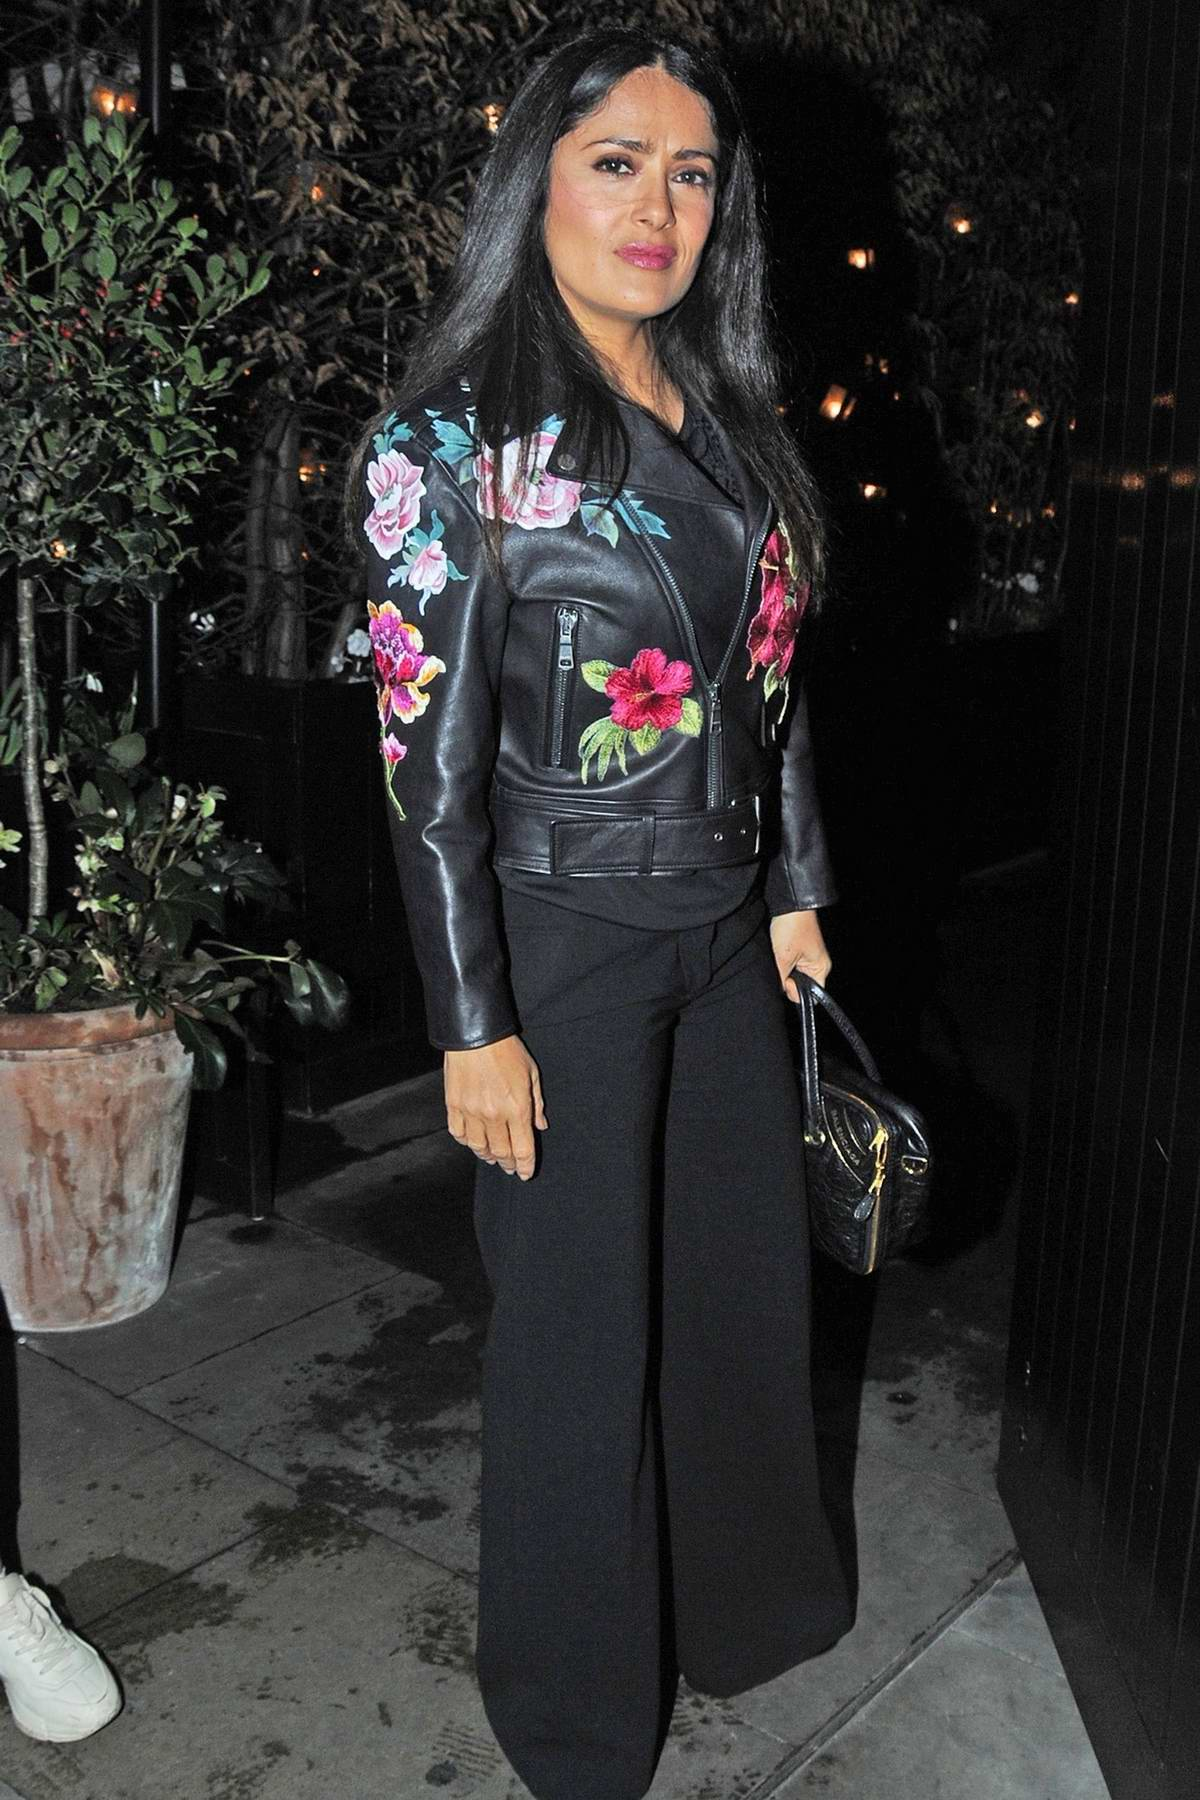 Salma Hayek spotted outside the Chiltern Firehouse in London